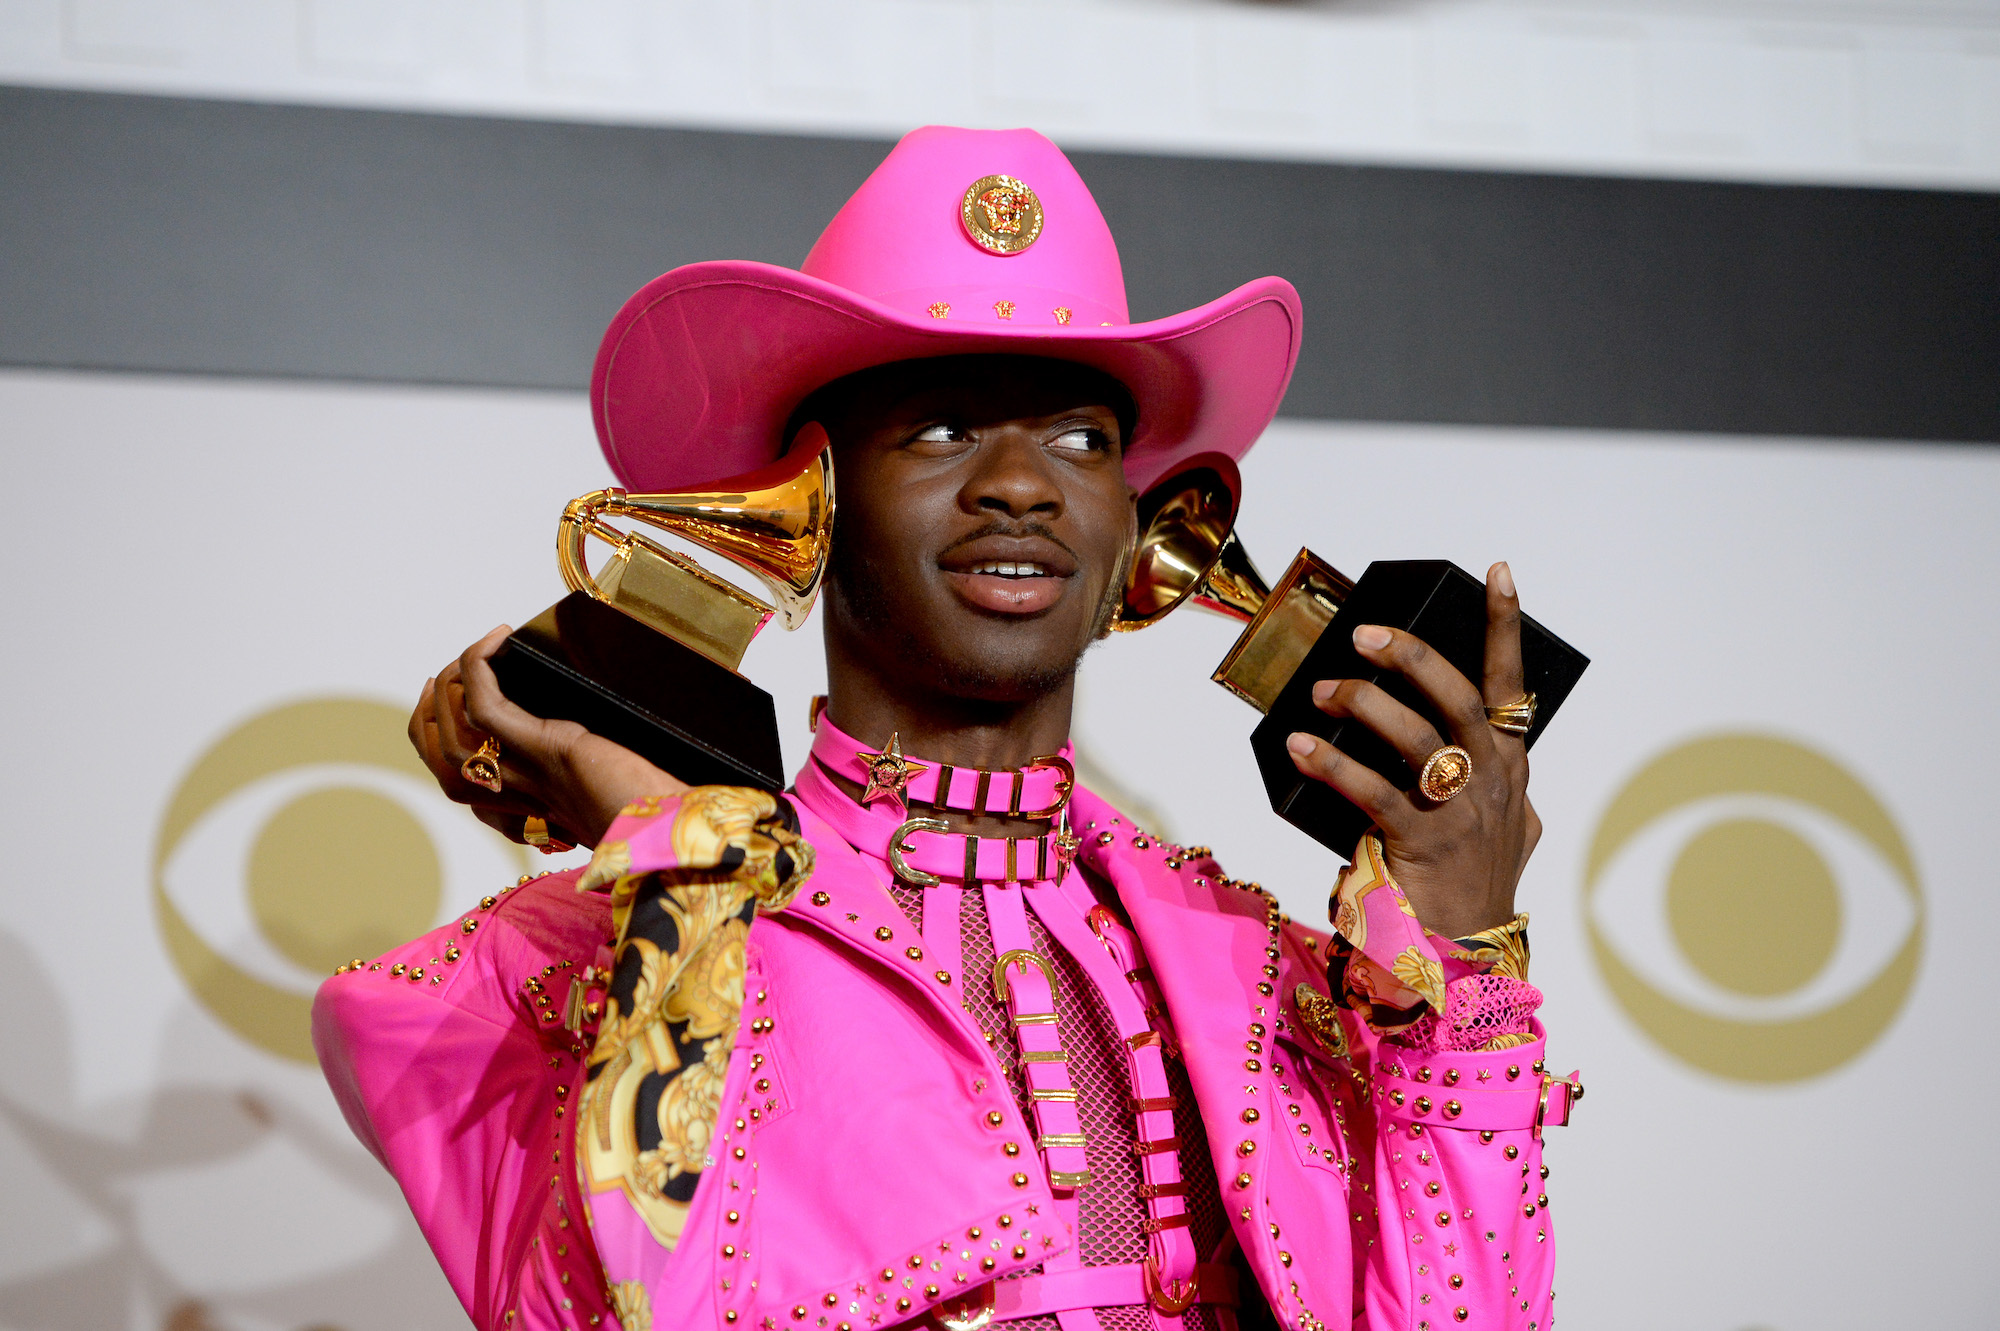 Lil Nas X poses with his Grammys at the 62nd Annual GRAMMY Awards on Jan. 26, 2020